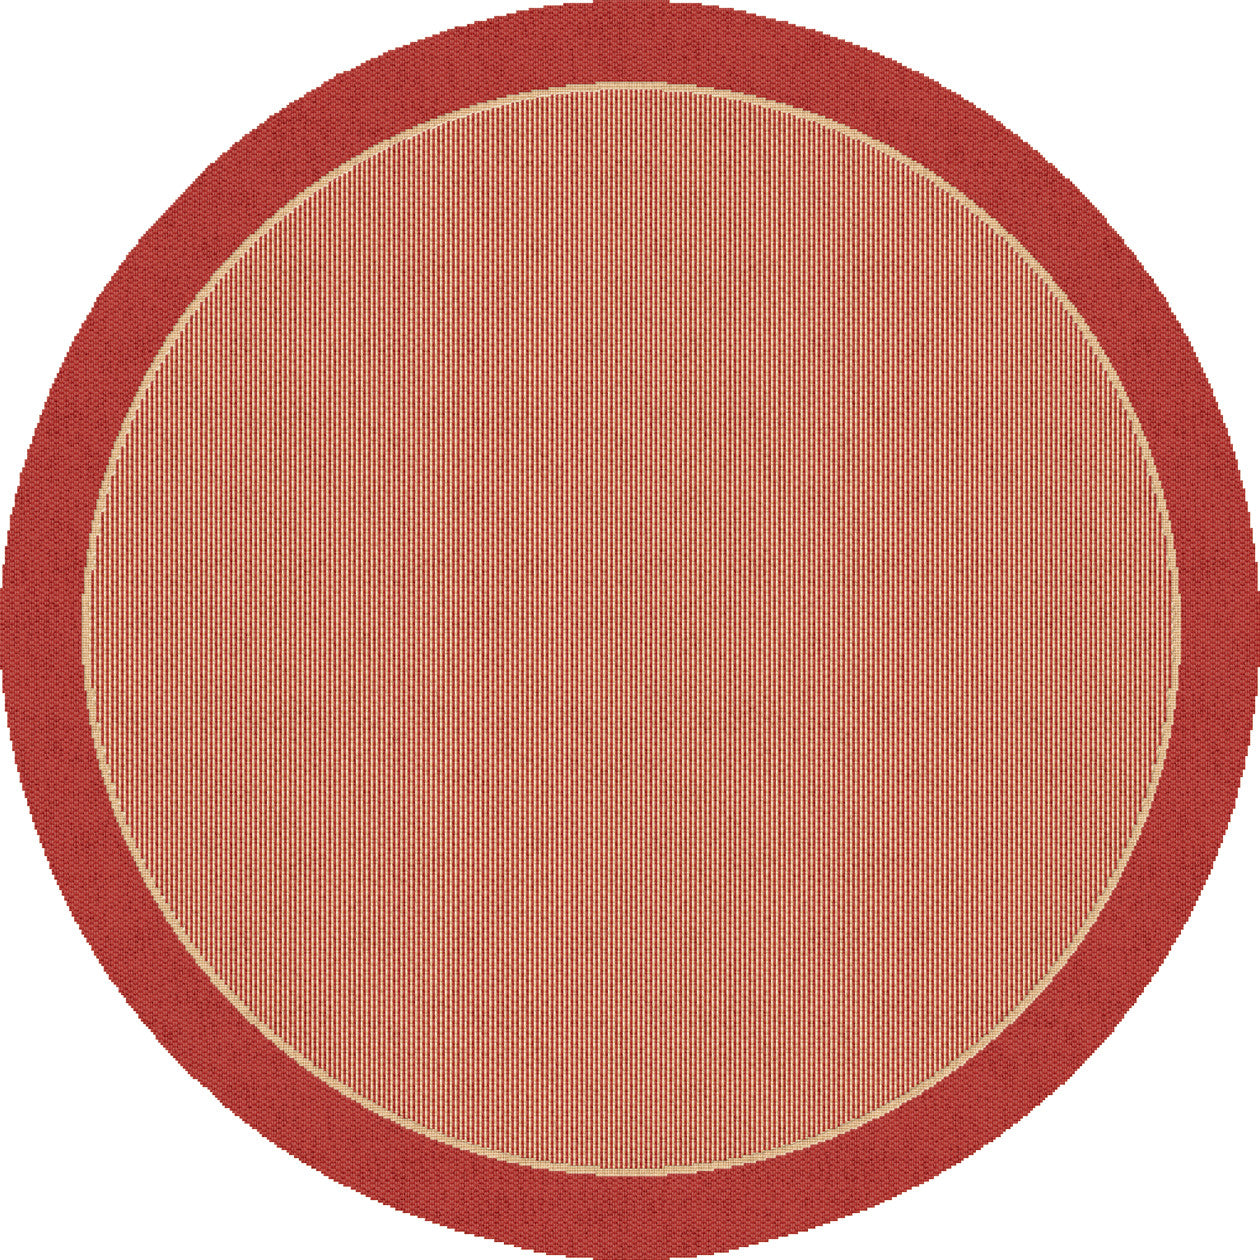 Dynamic rugs piazza red modern round area rug rugmethod for Modern round area rugs